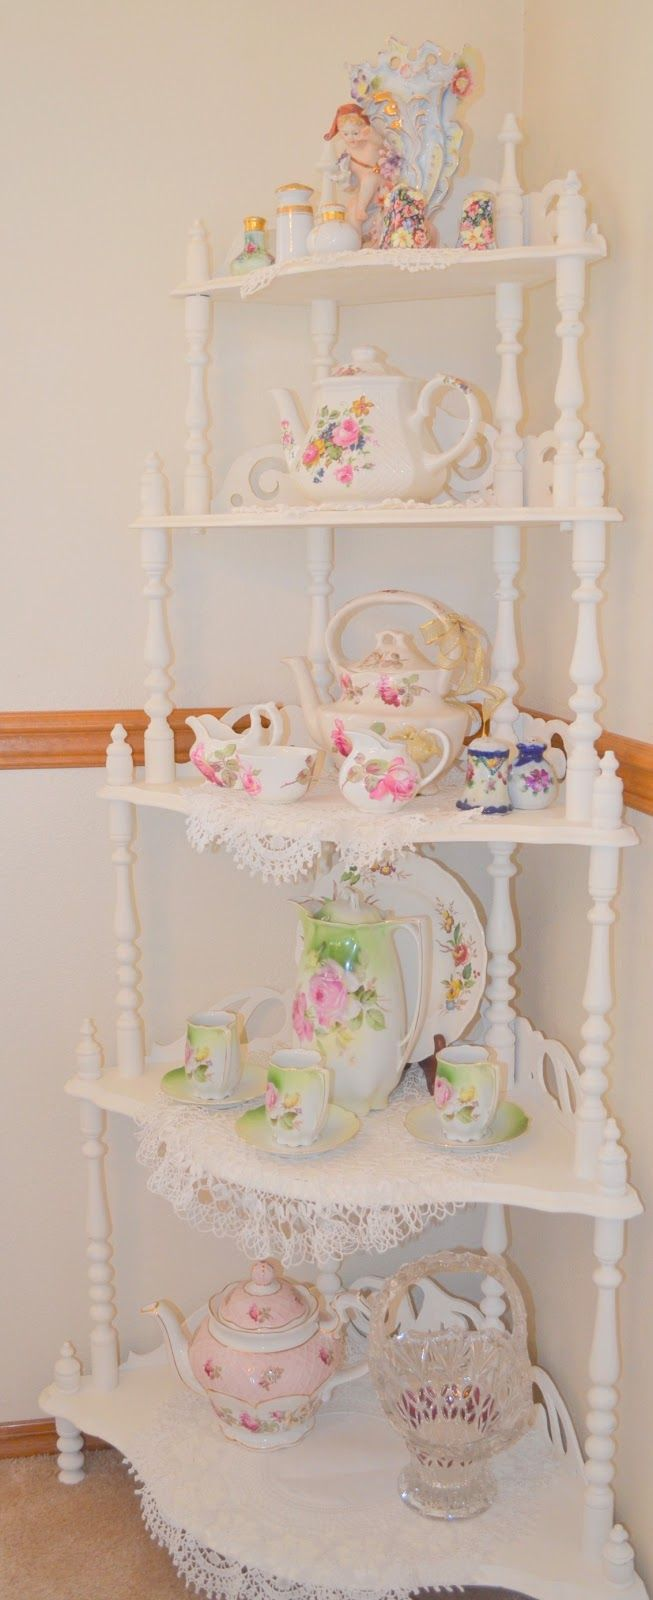 """Bernideen's Tea Time Blog: NO TURNING BACK NOW! More DIY for """"Open House"""""""